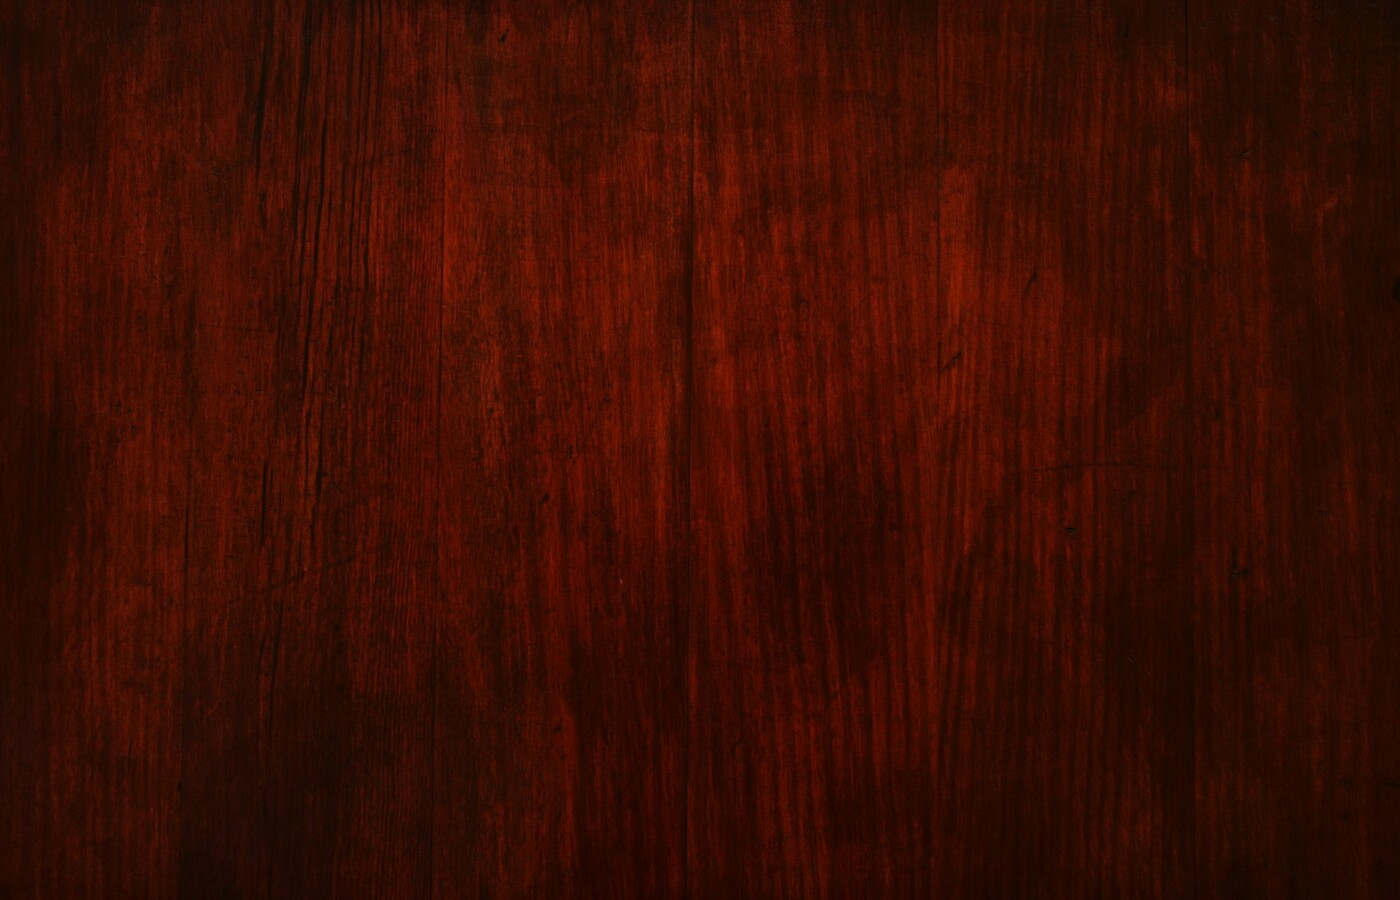 red-texture-image.jpg